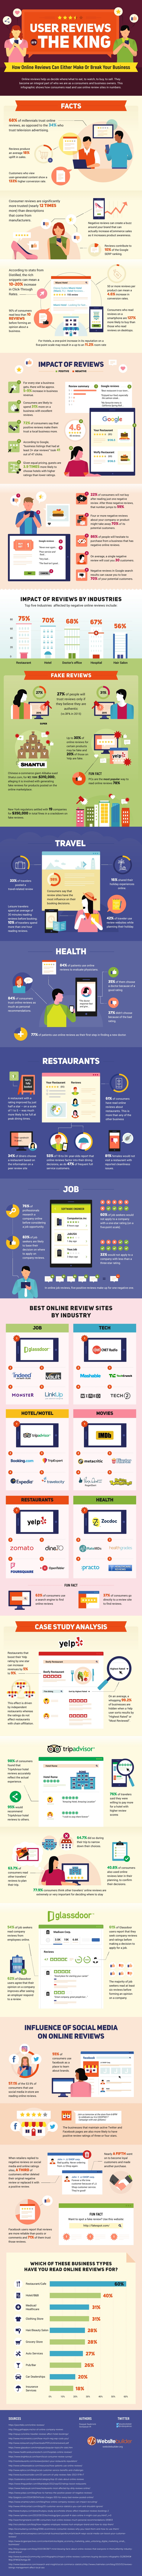 iHomefinder - Online Review Infographic Guest Post - 20170607